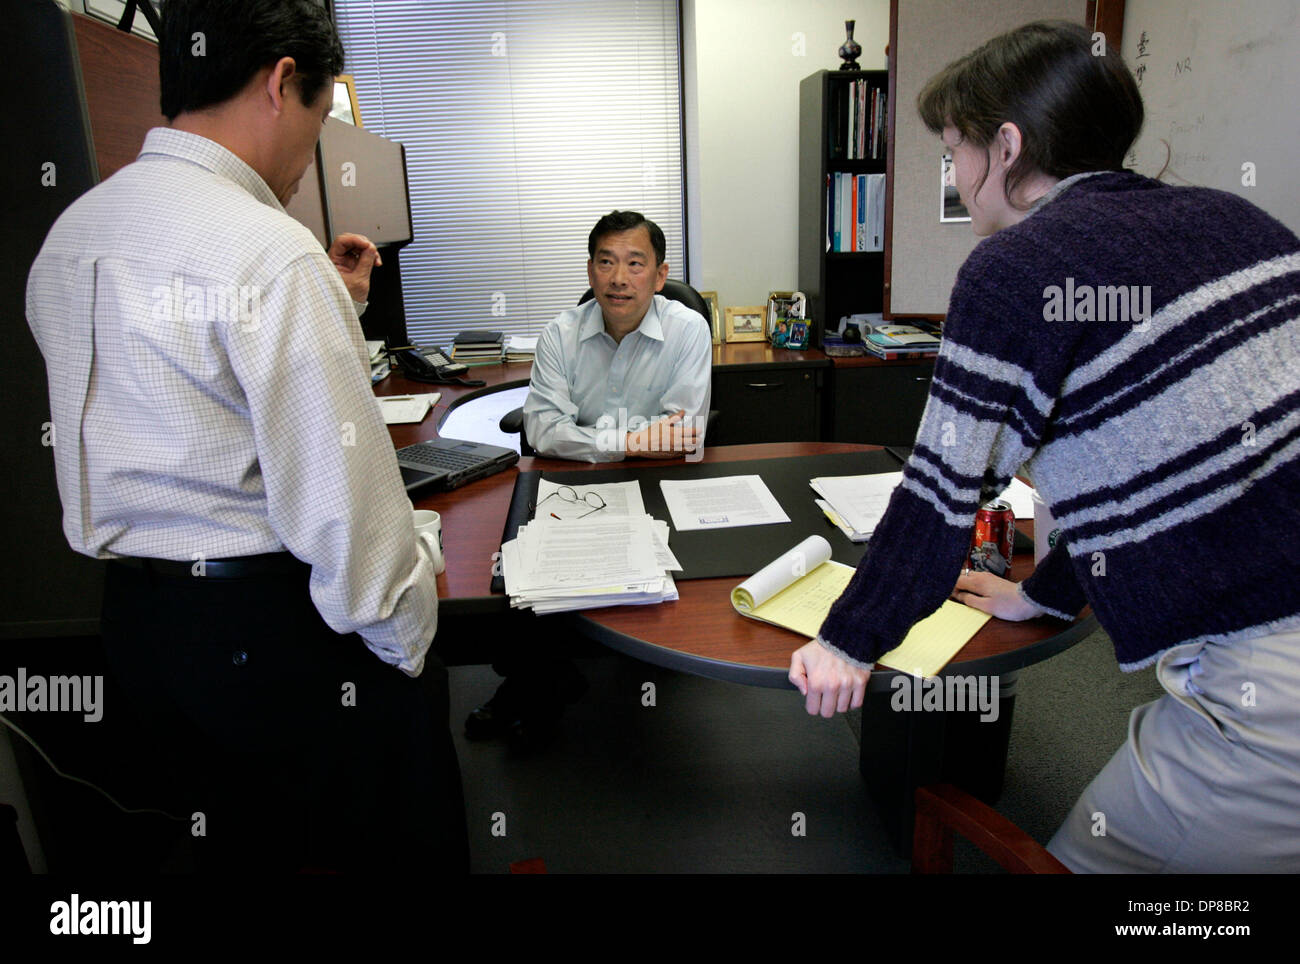 (Published 5/16/2006, C-4)  LE_chang253070x001_3-2-2006_Sorrento Valley_MICHAEL CHANG, CEO of Optimer Pharmaceuticals, Inc.,  in Sorrento Valley, center, talks to YOUE-KONG SHUE, vice-president of clinical development, left, and PAMELA SEARS, senior director, biology, right, about an ongoing project, in his office._LAURA EMBRY/San Diego Union-Tribune - Stock Image